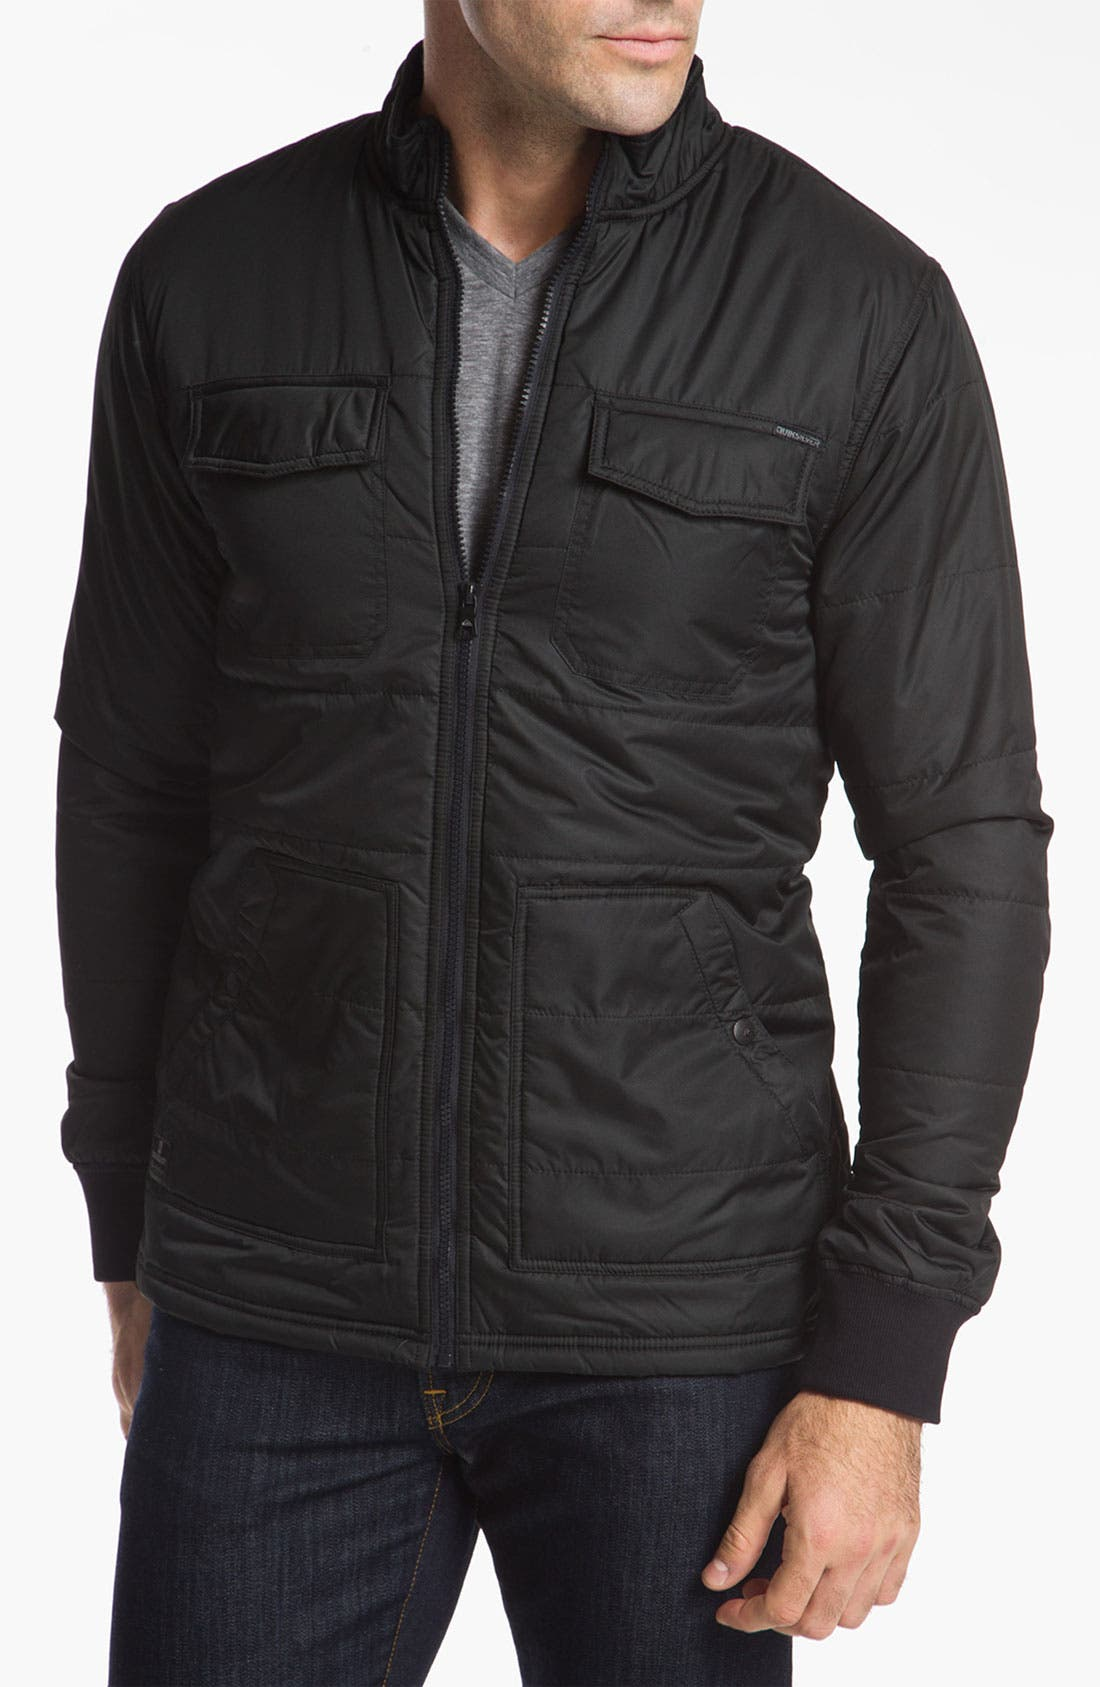 Alternate Image 1 Selected - Quiksilver 'Steadfast' Jacket